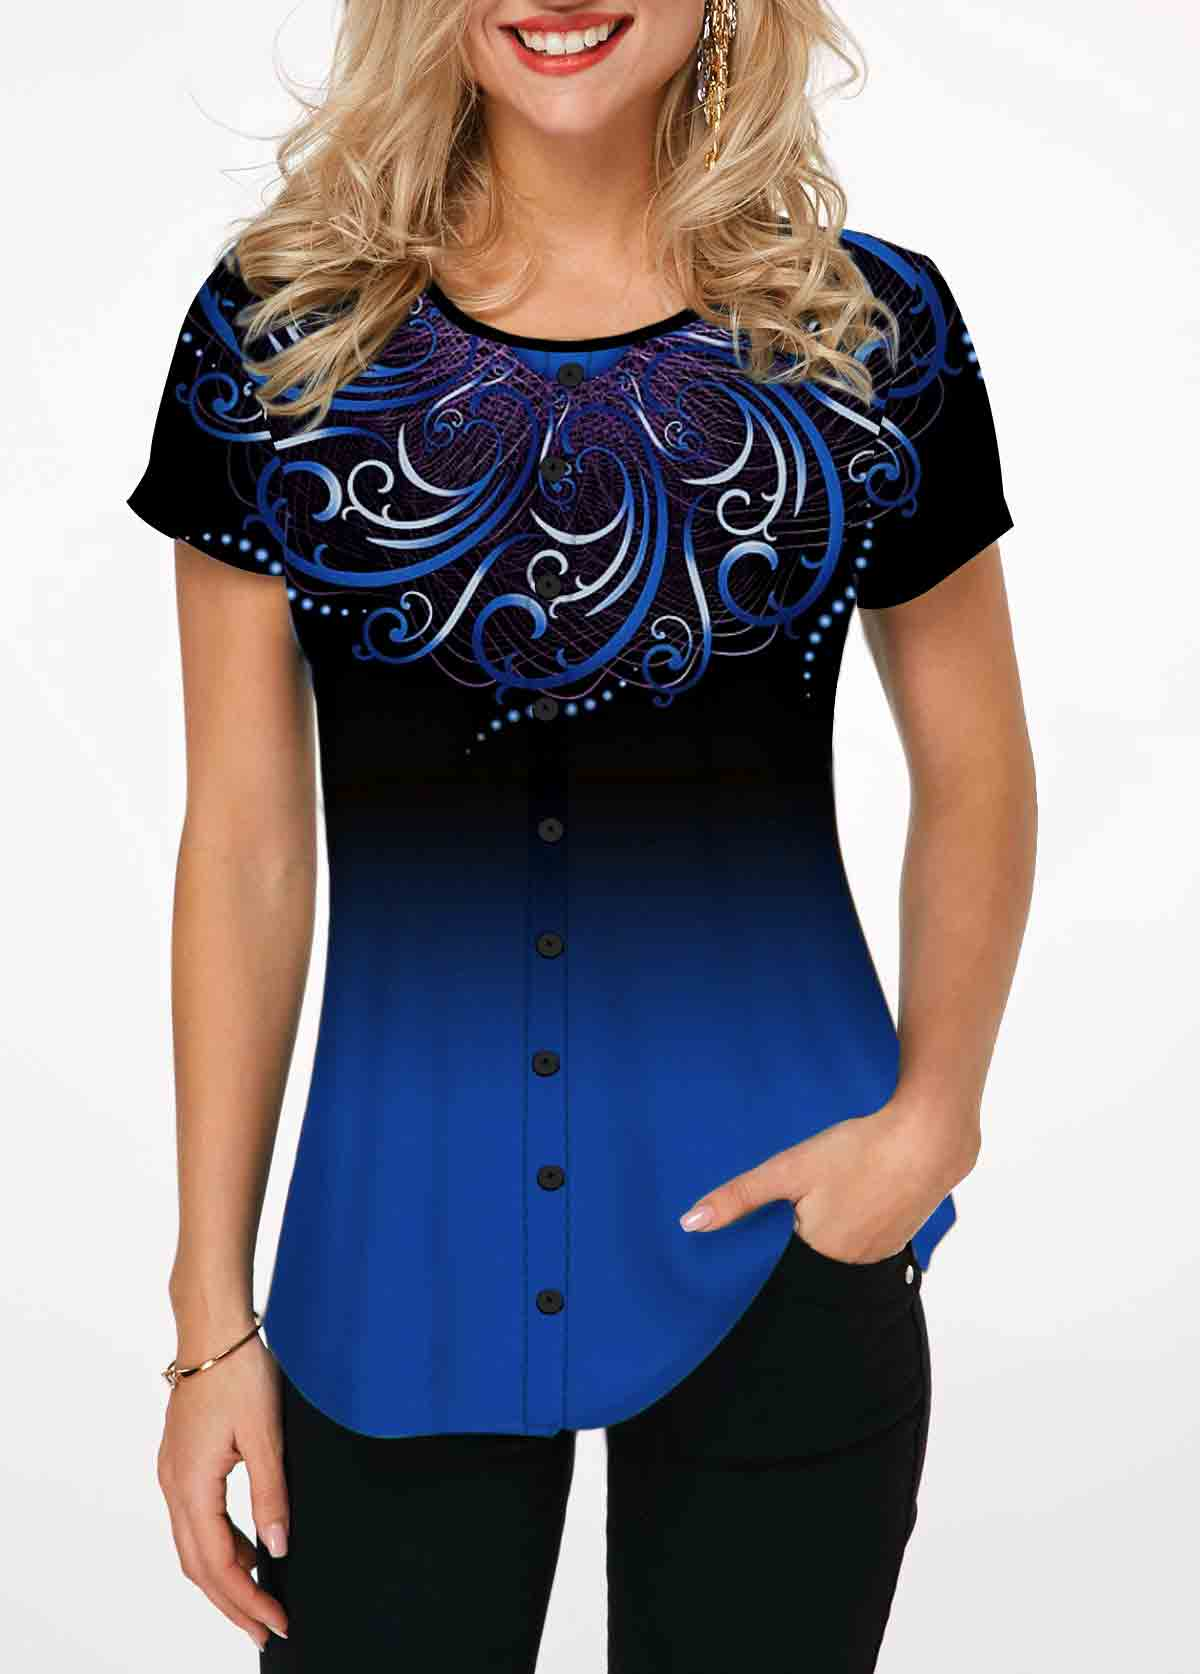 ROTITA Tribal Print Blue Gradient Short Sleeve T Shirt